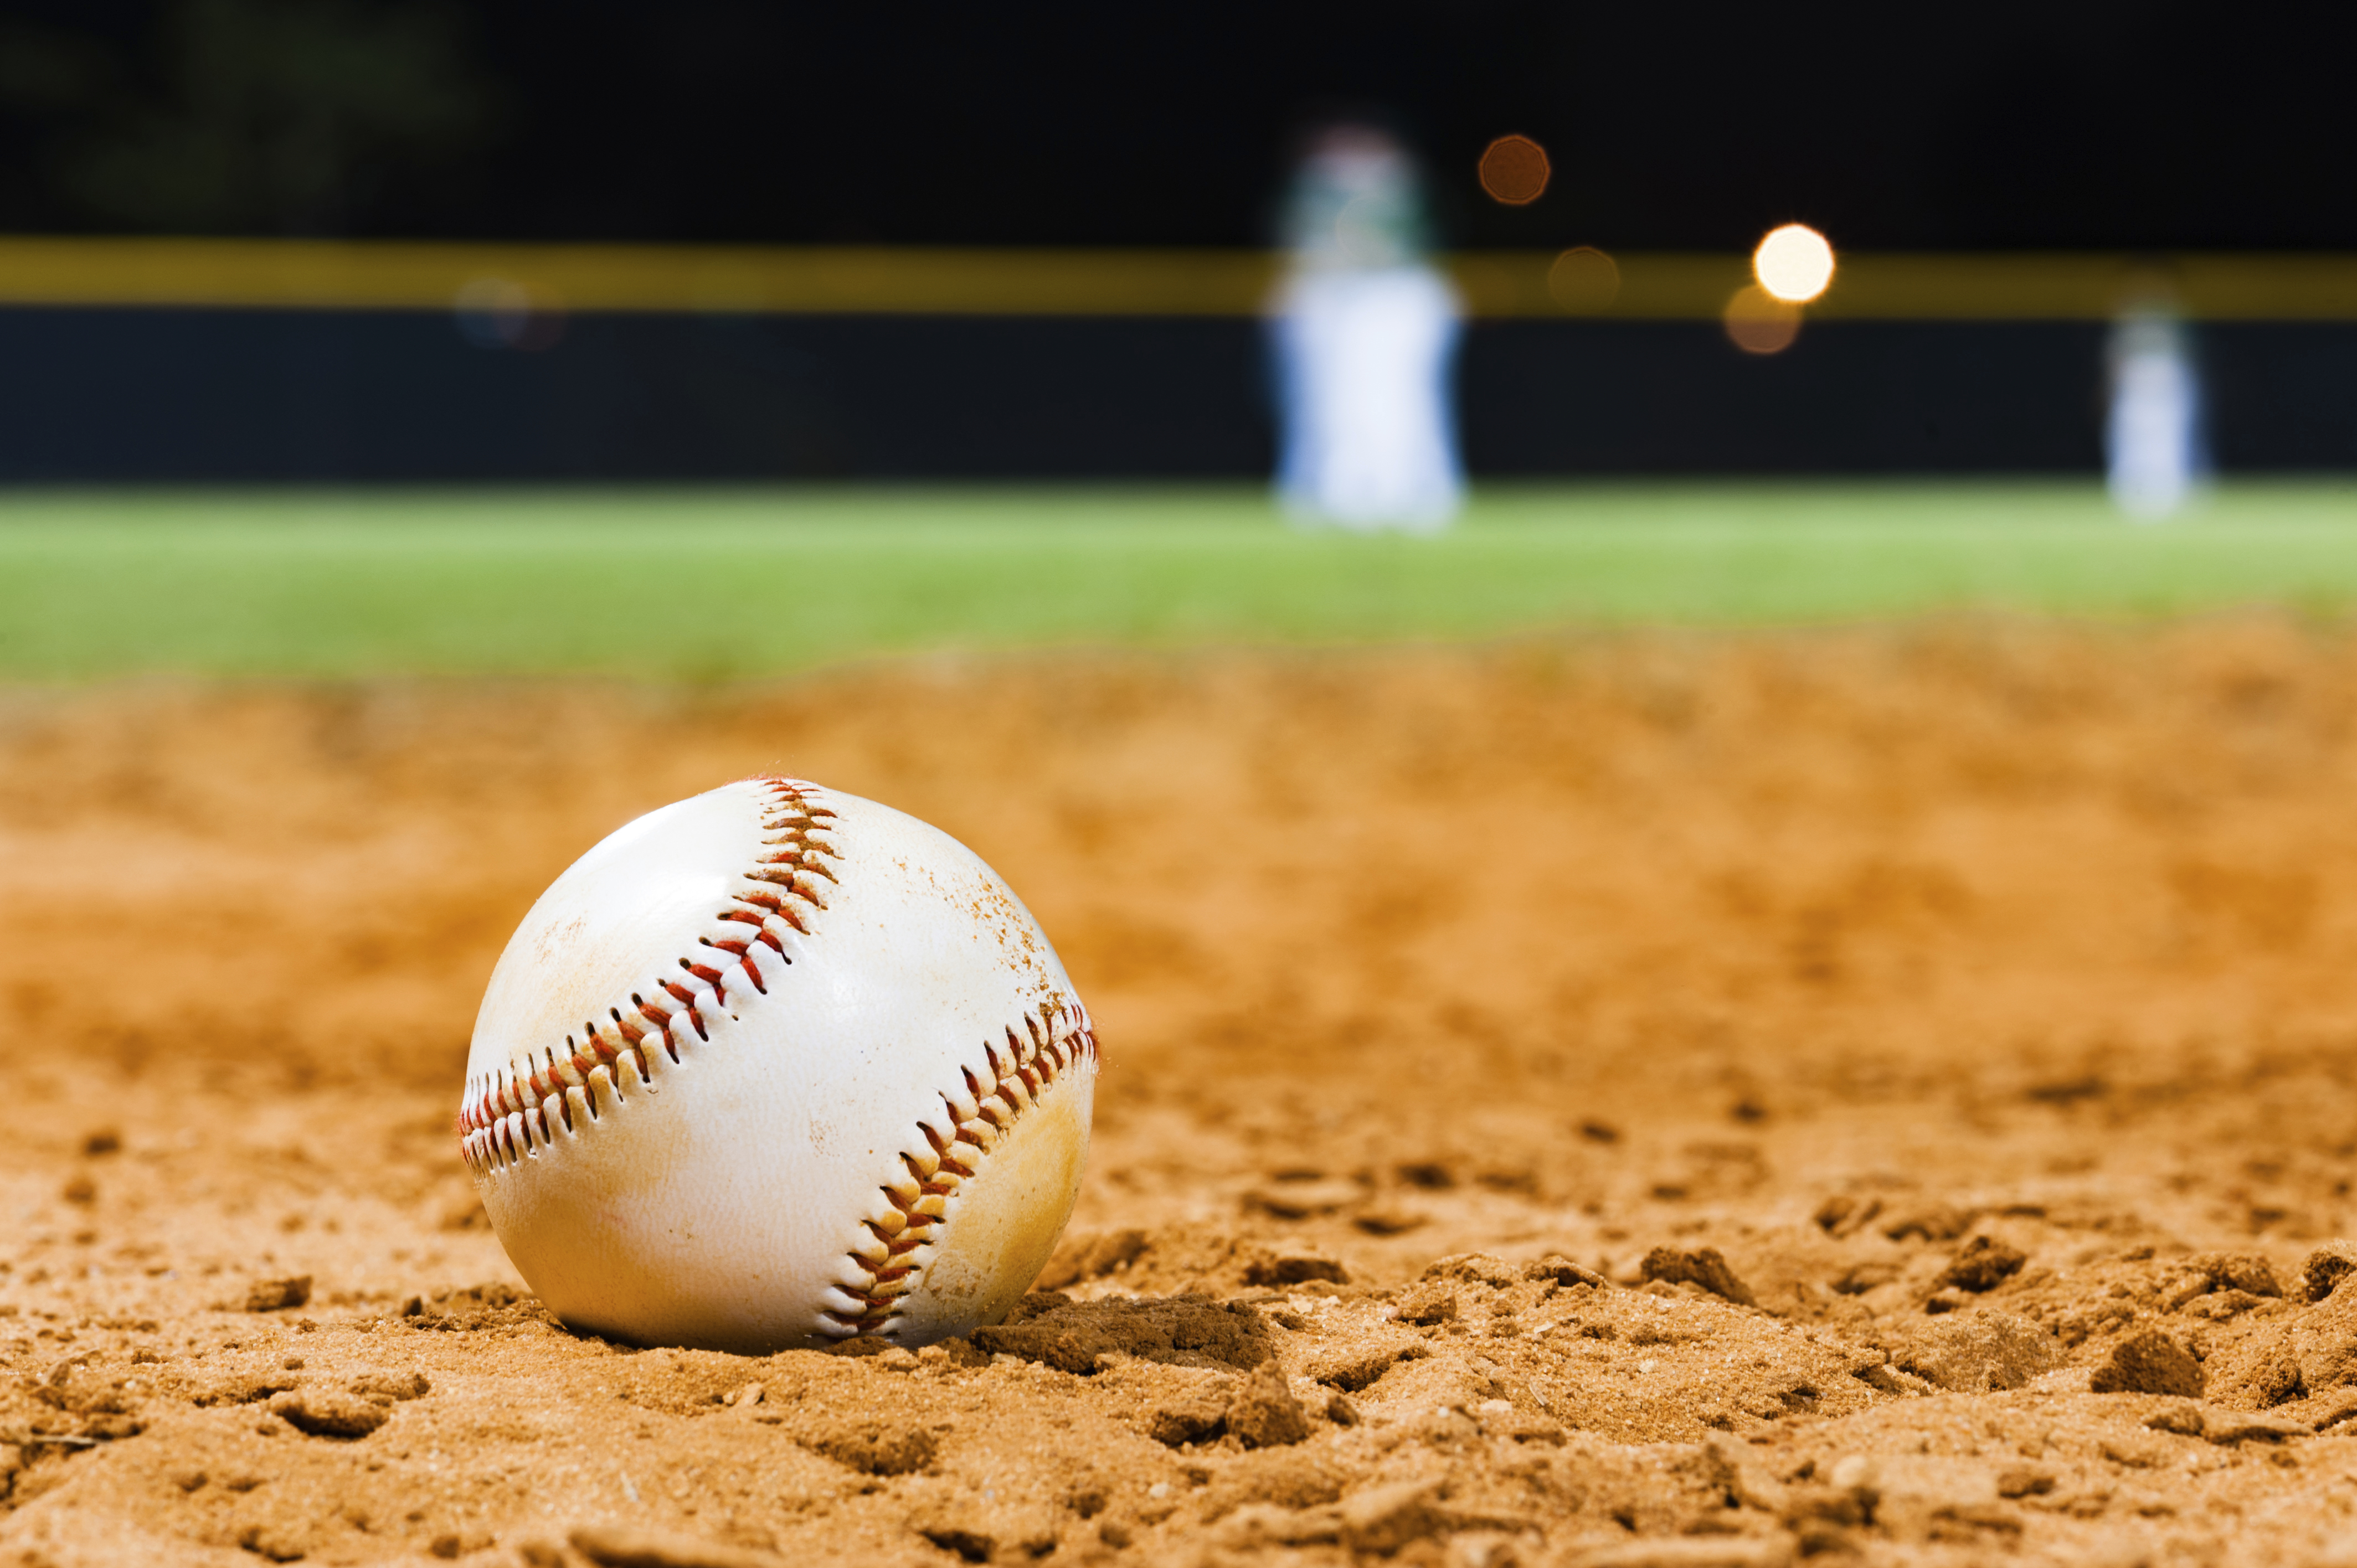 Little League Baseball Close Up with Team